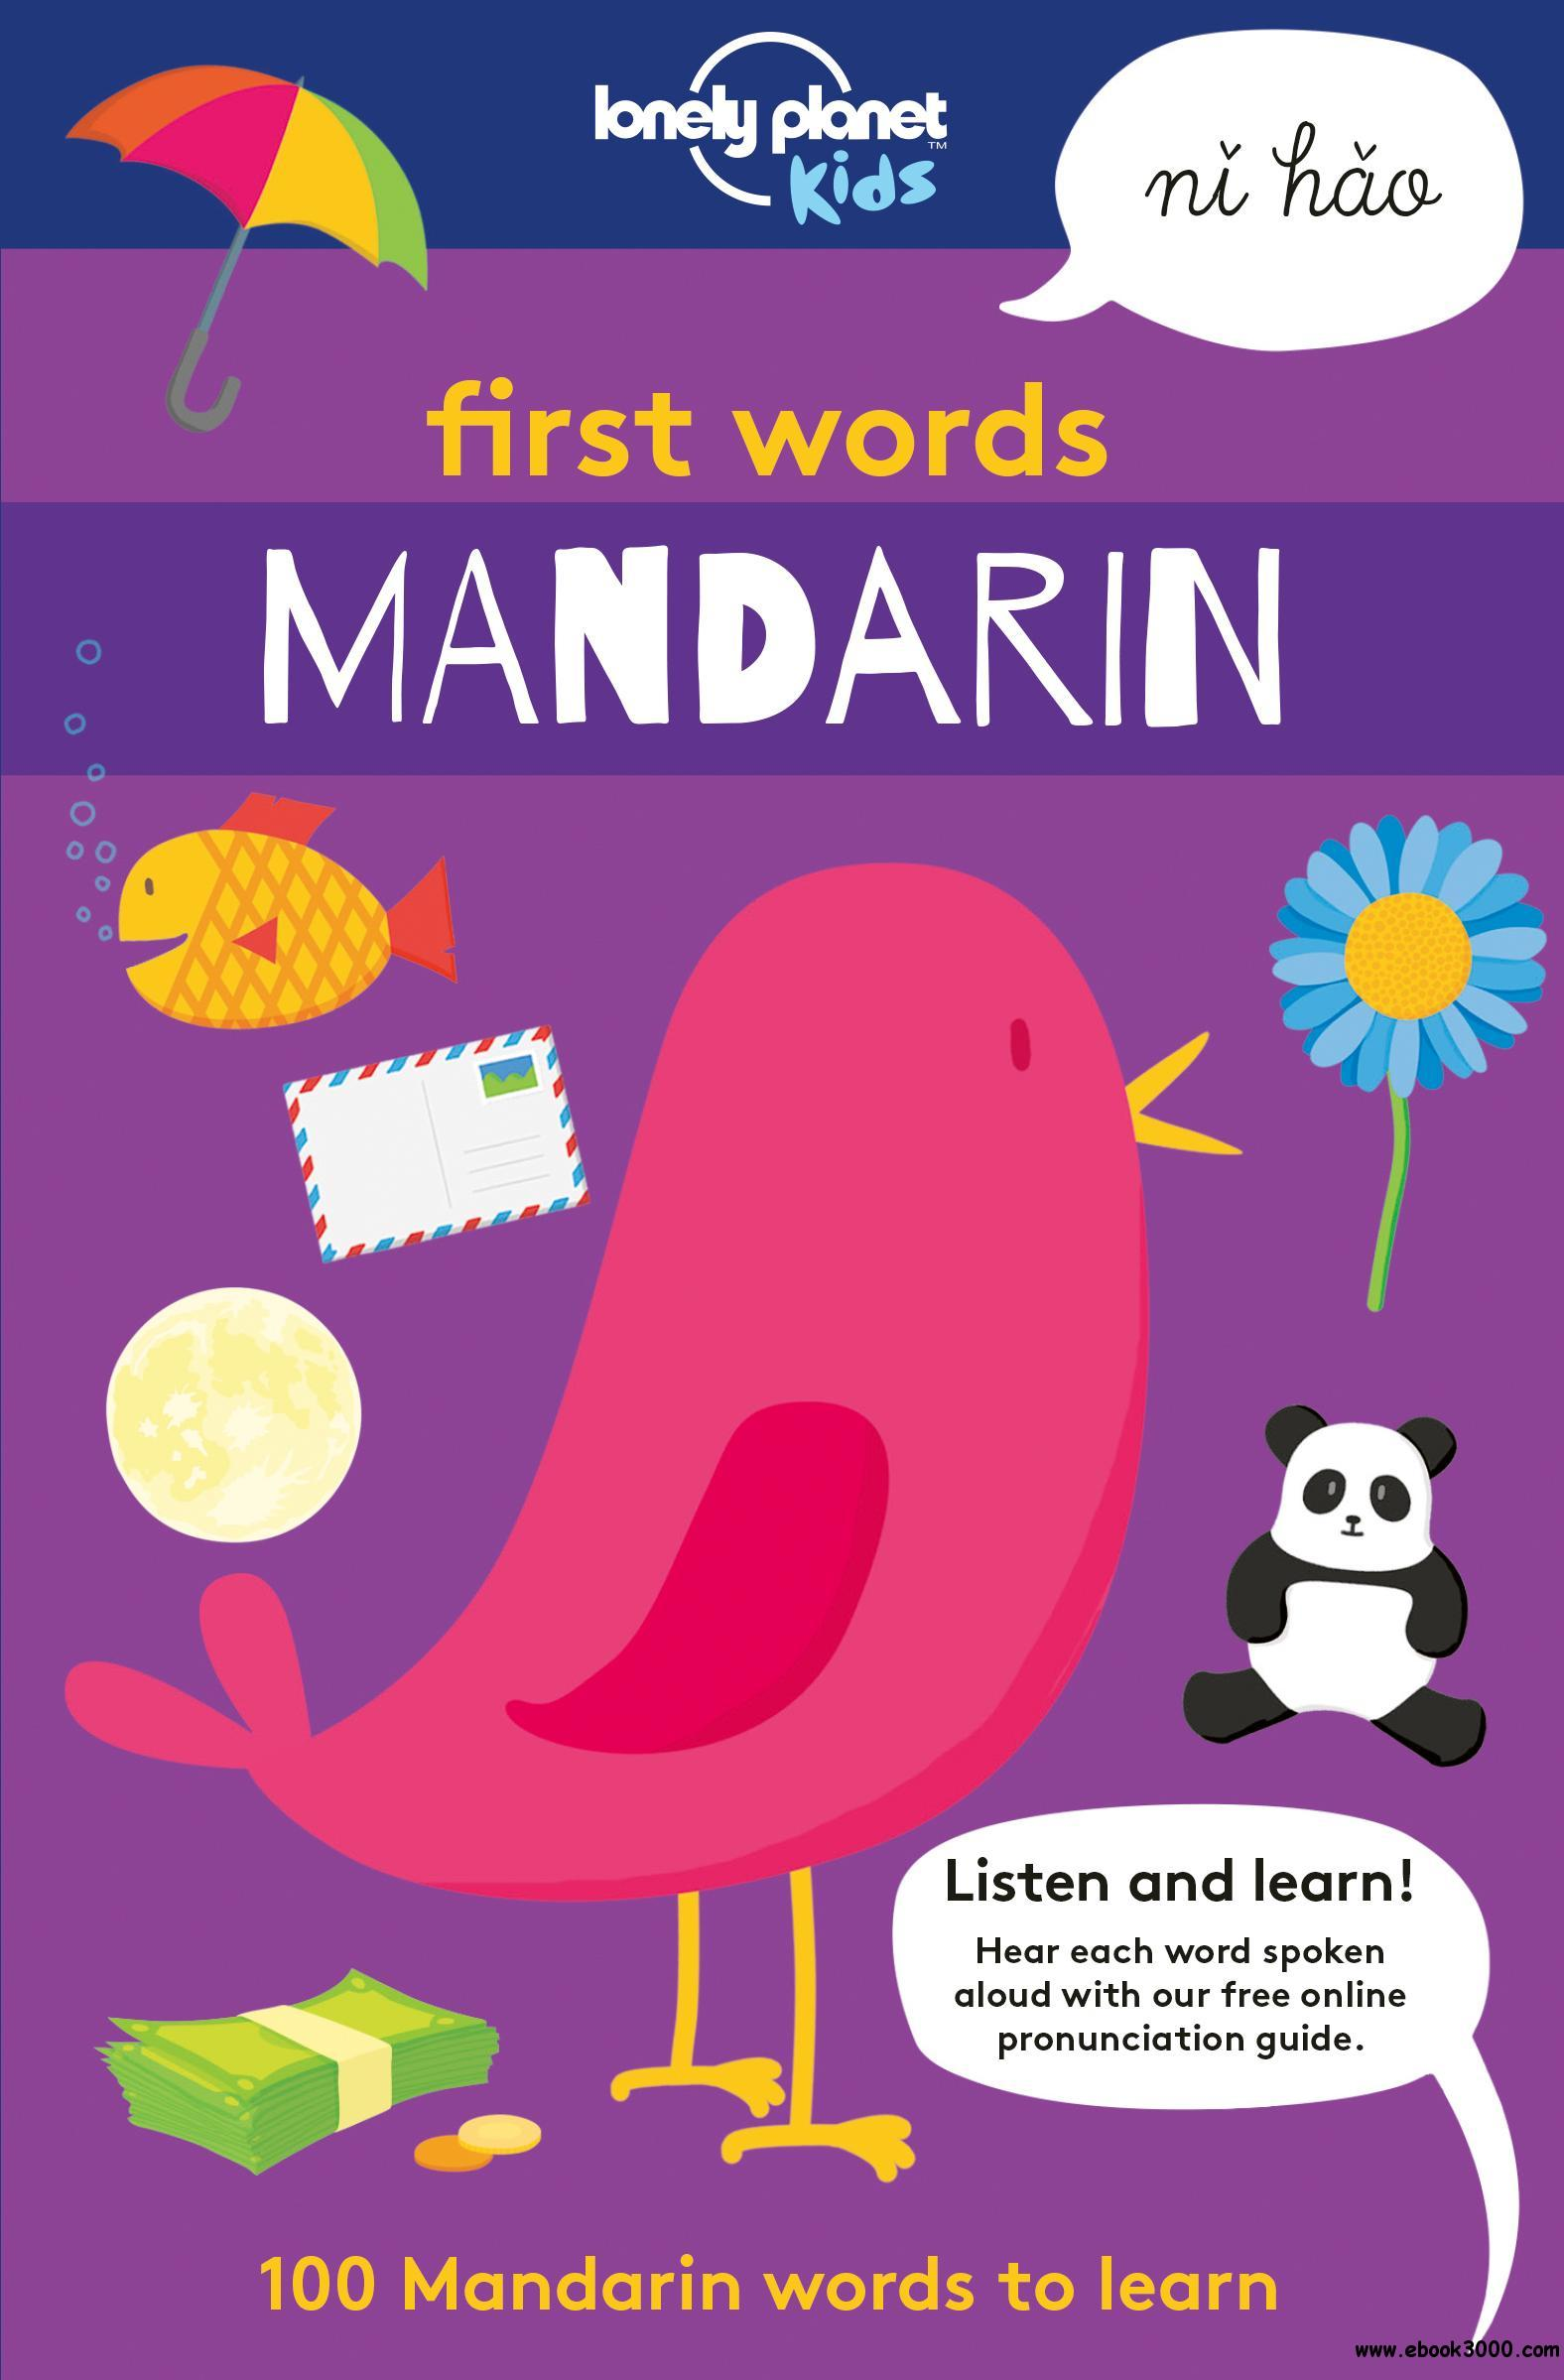 First Words - Mandarin: 100 Mandarin words to learn